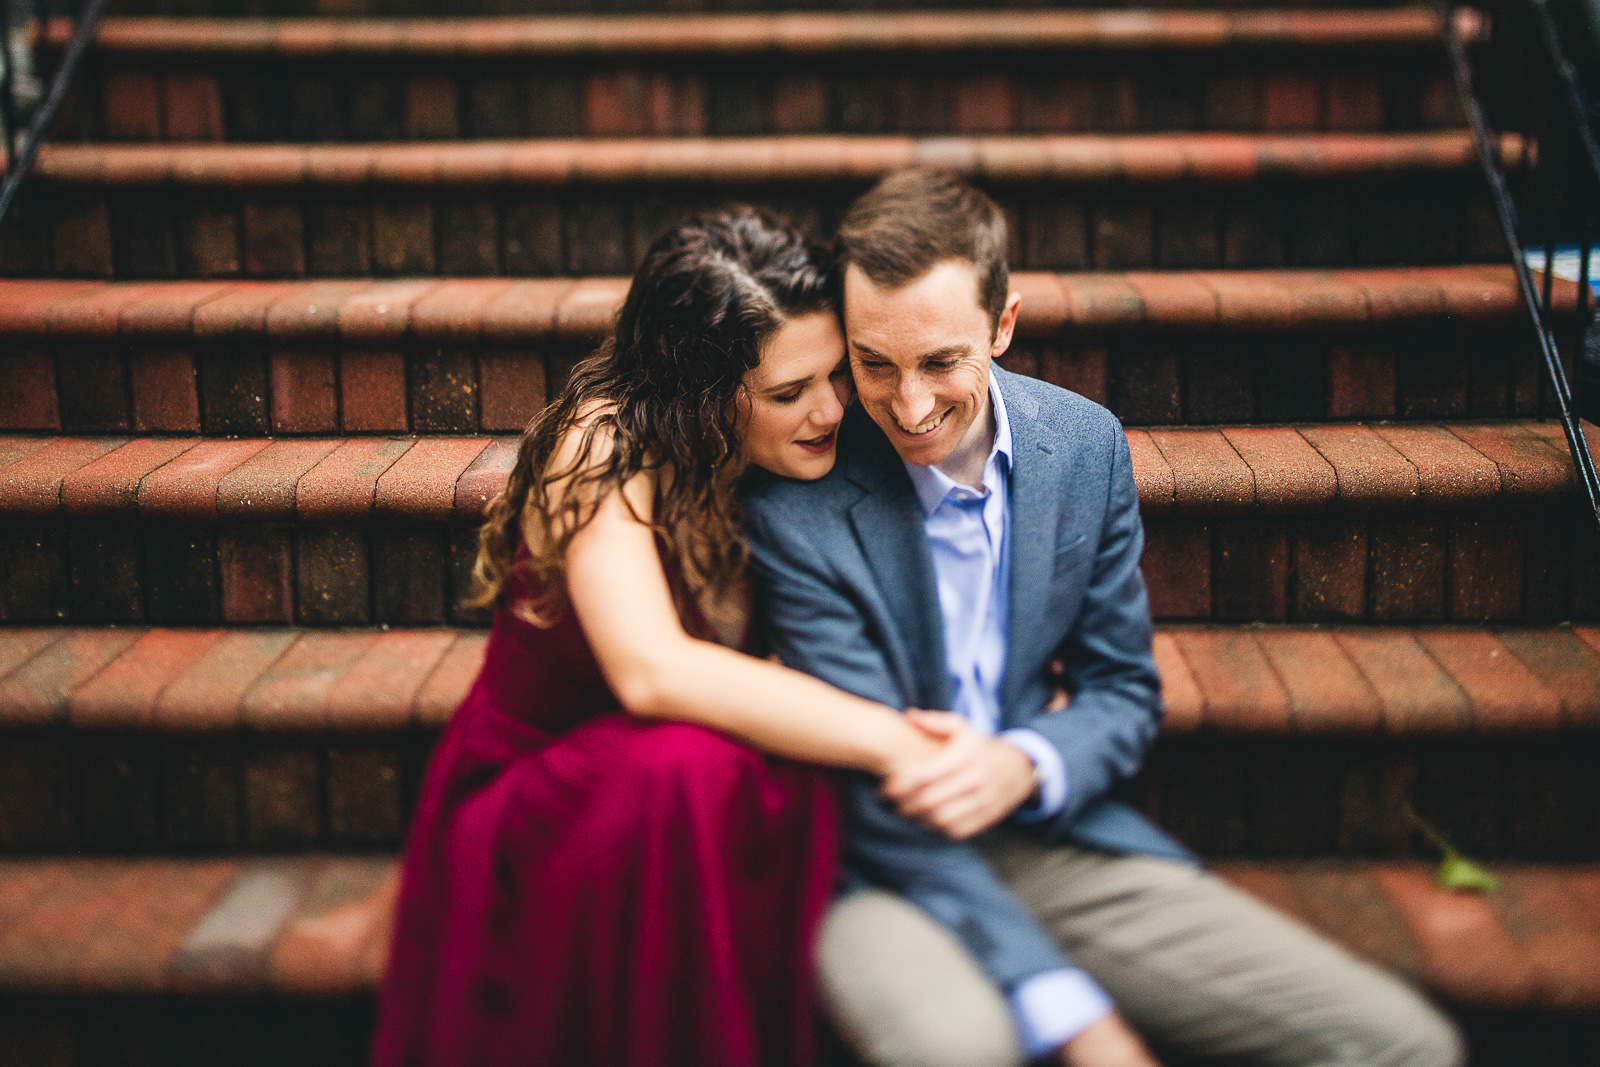 16 heartfelt chicago engagement photos - Chicago Engagement Photos // Colleen + Will